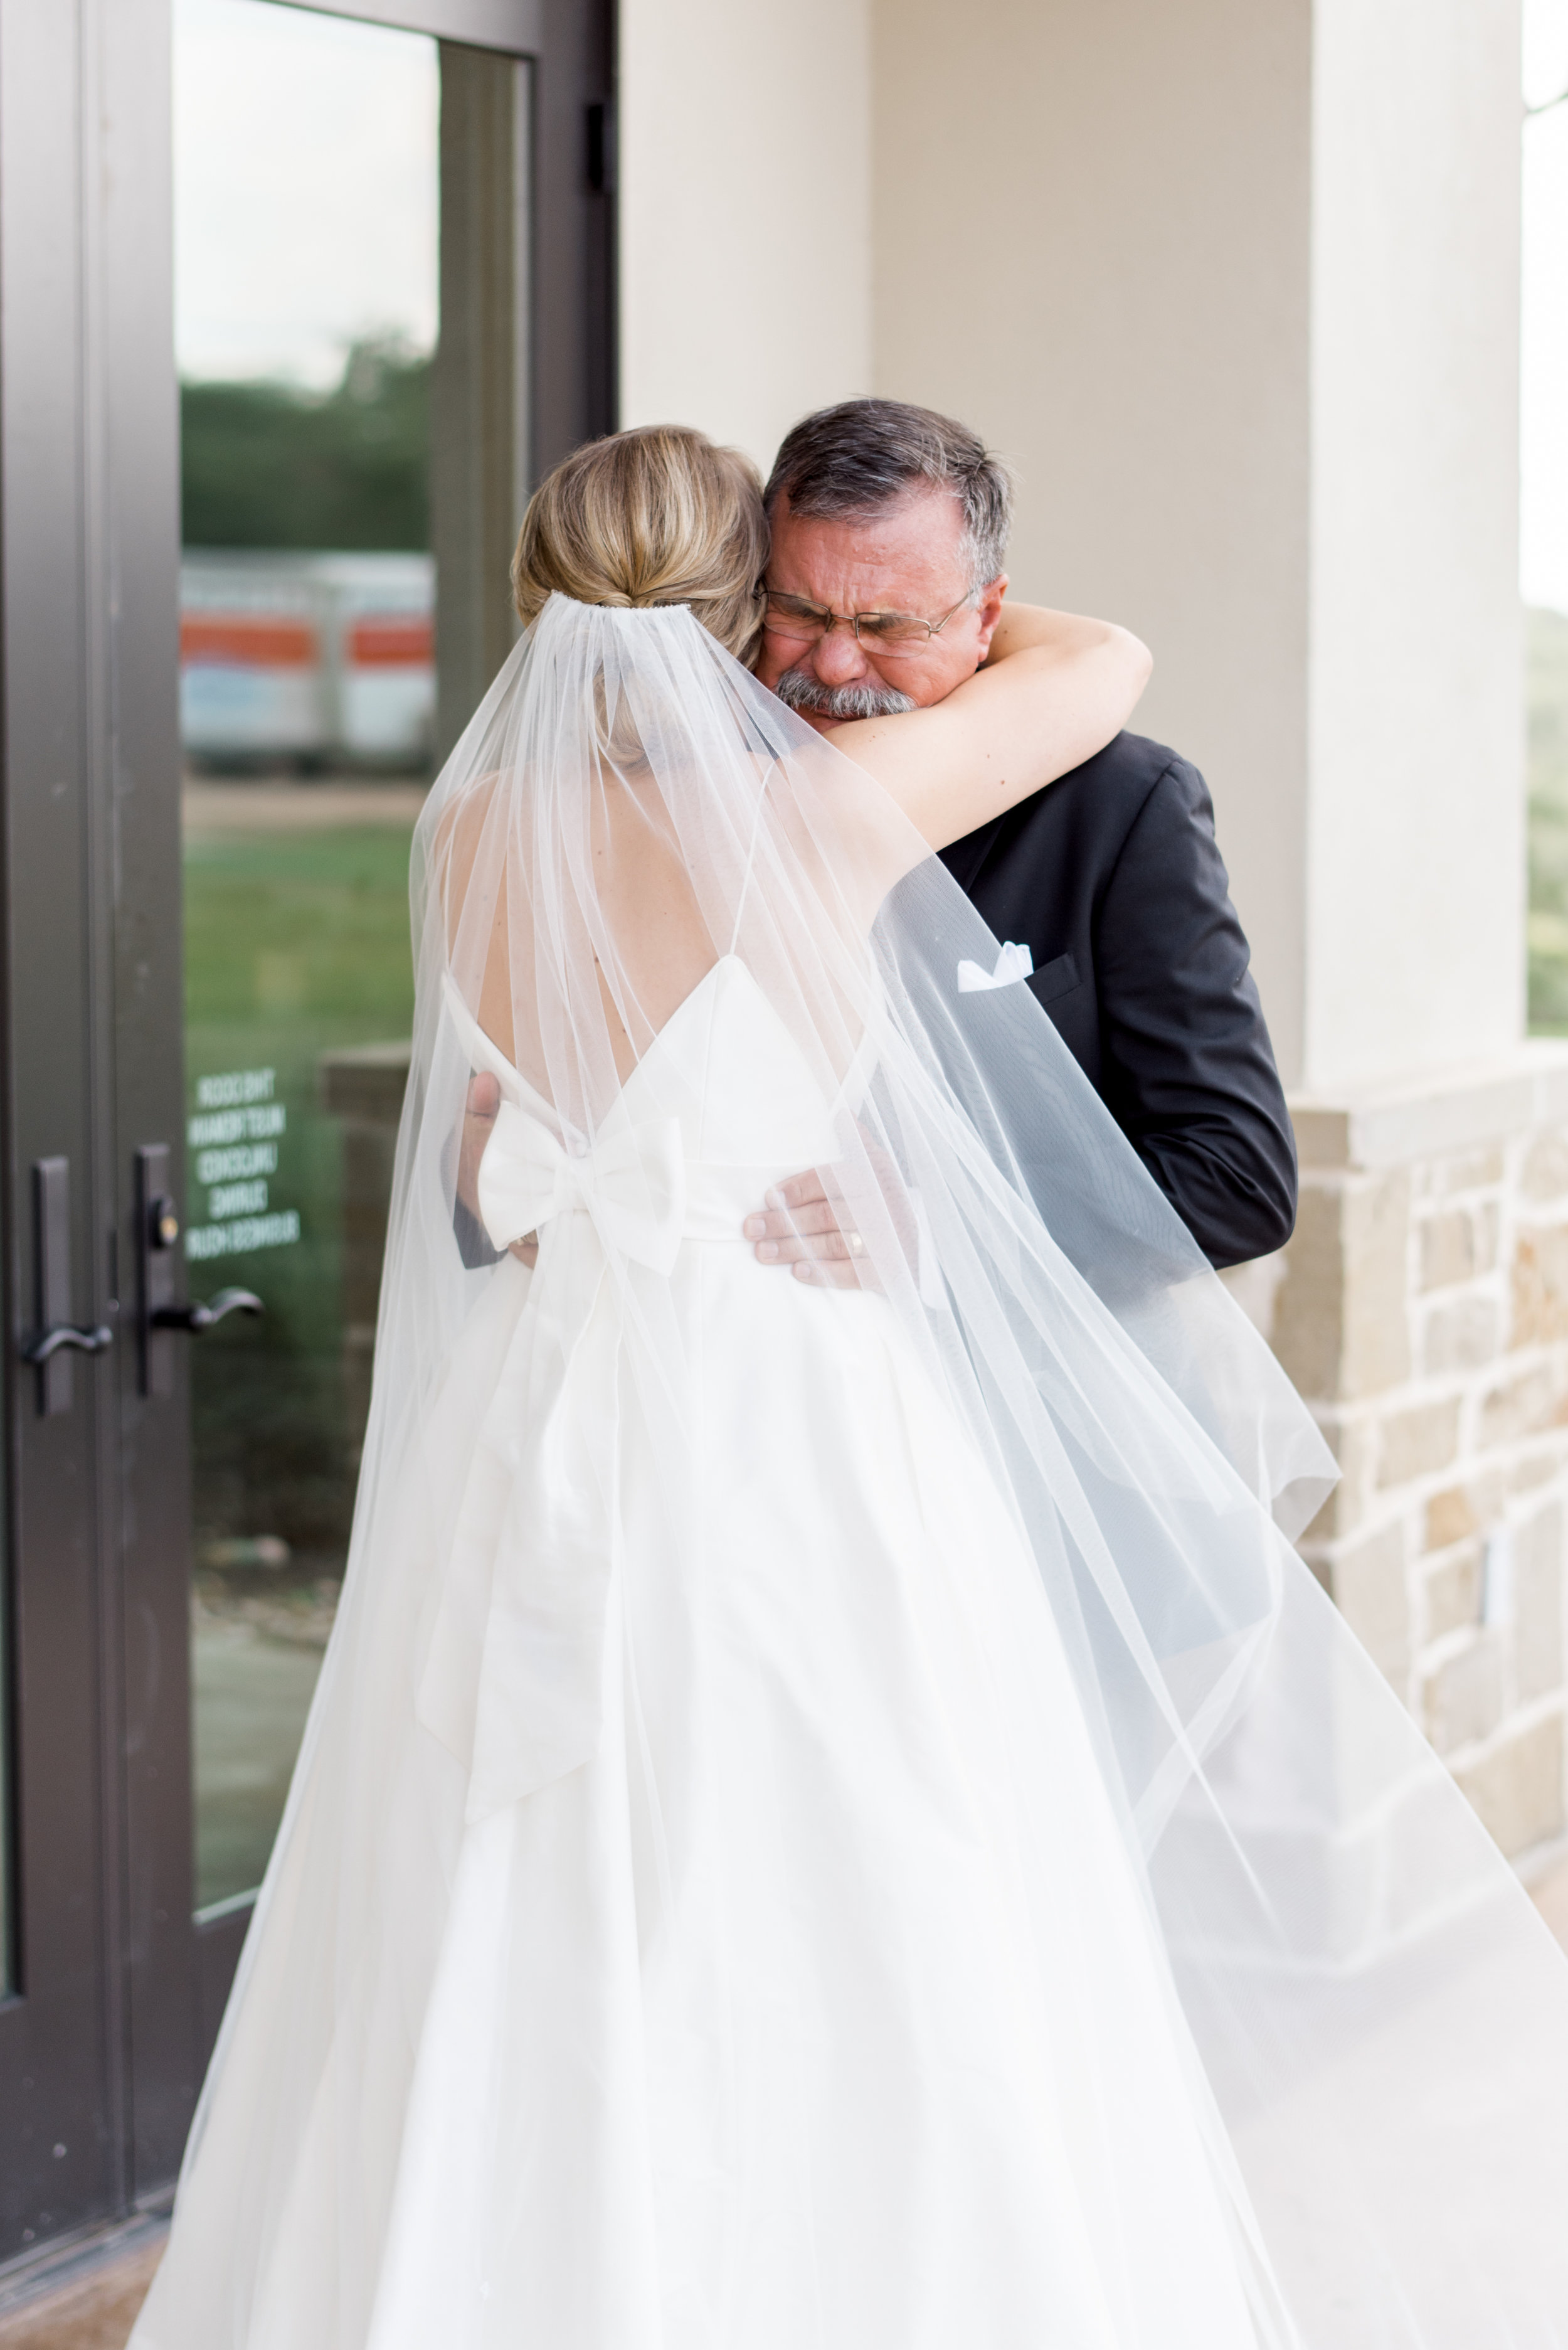 First look with dad wedding day austin wedding venue canyonwood ridge + destination planner coordinator epoch co + photographer erin elizabeth photo